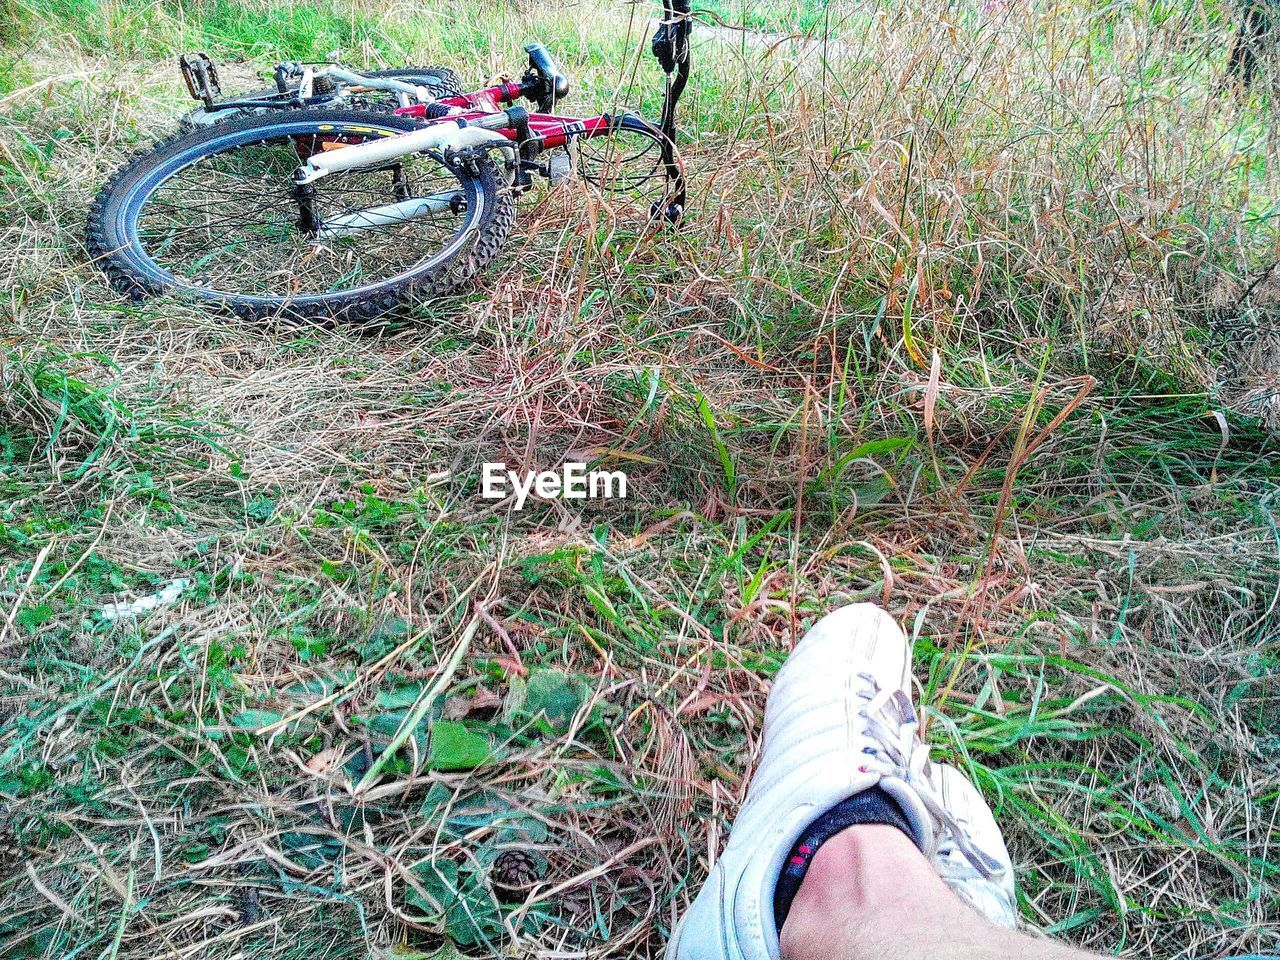 Low section of man wearing shoes on grassy field by fallen bicycle